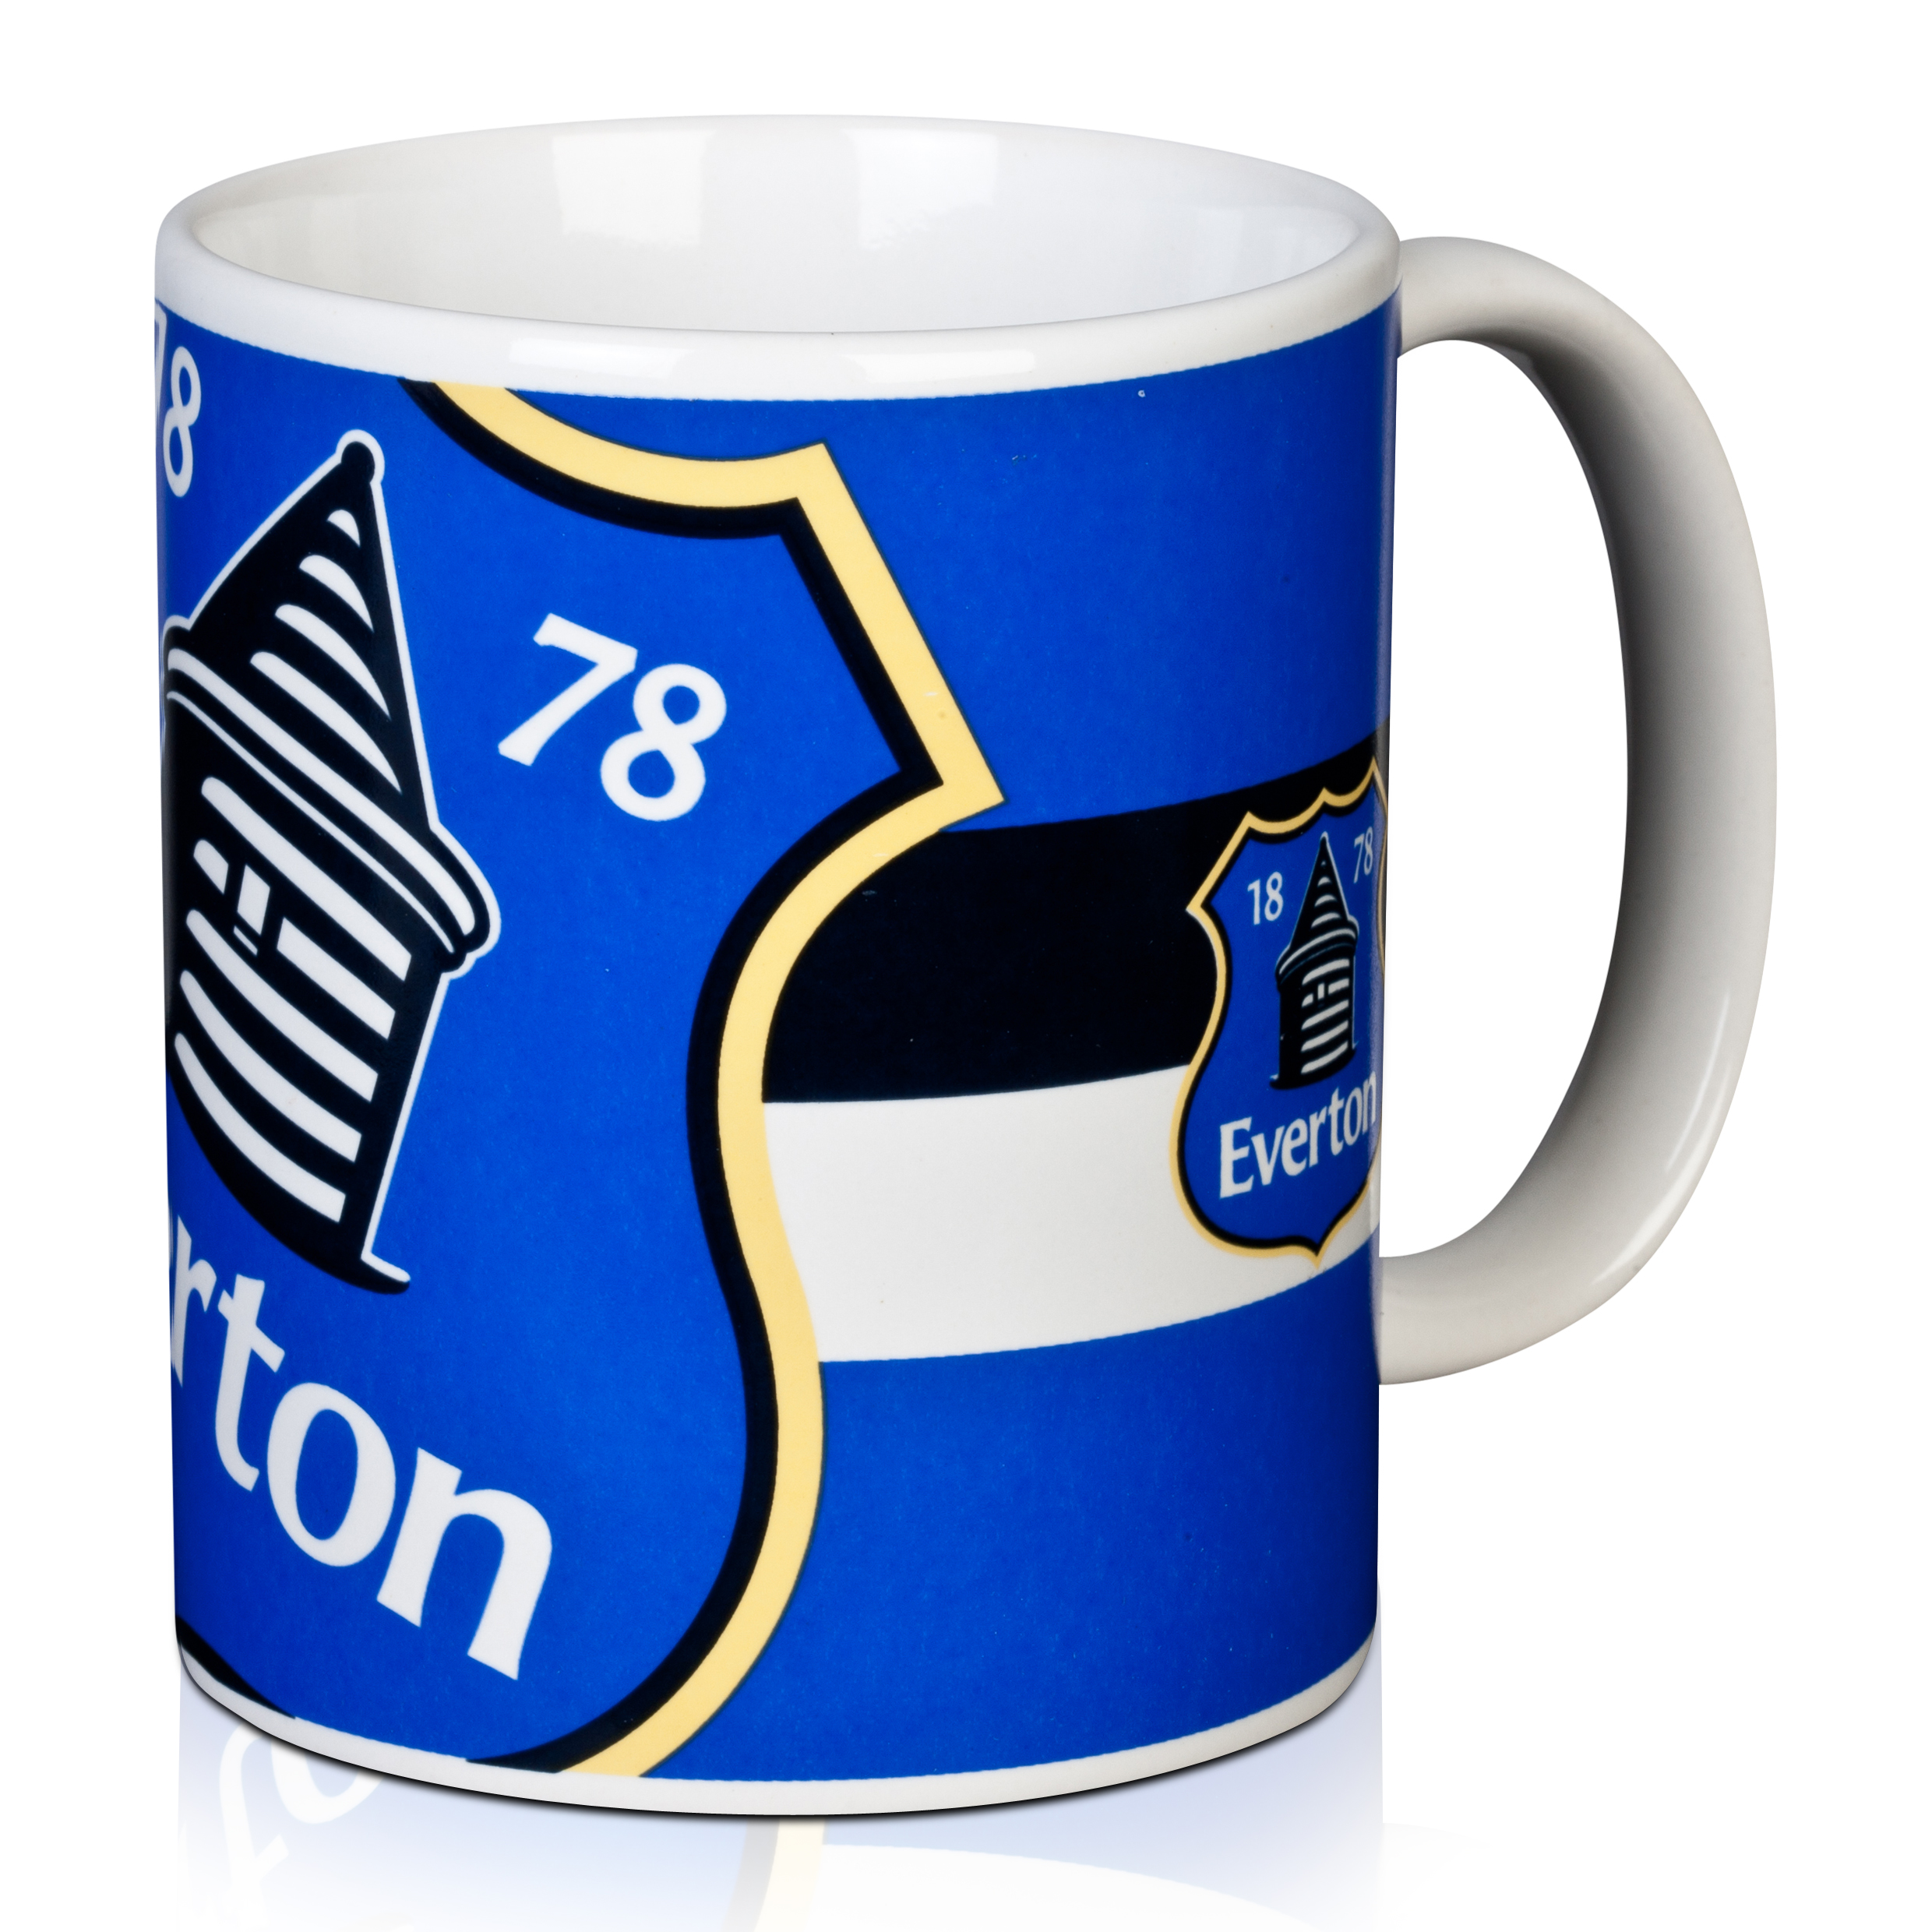 Everton Big Crest Mug 11oz